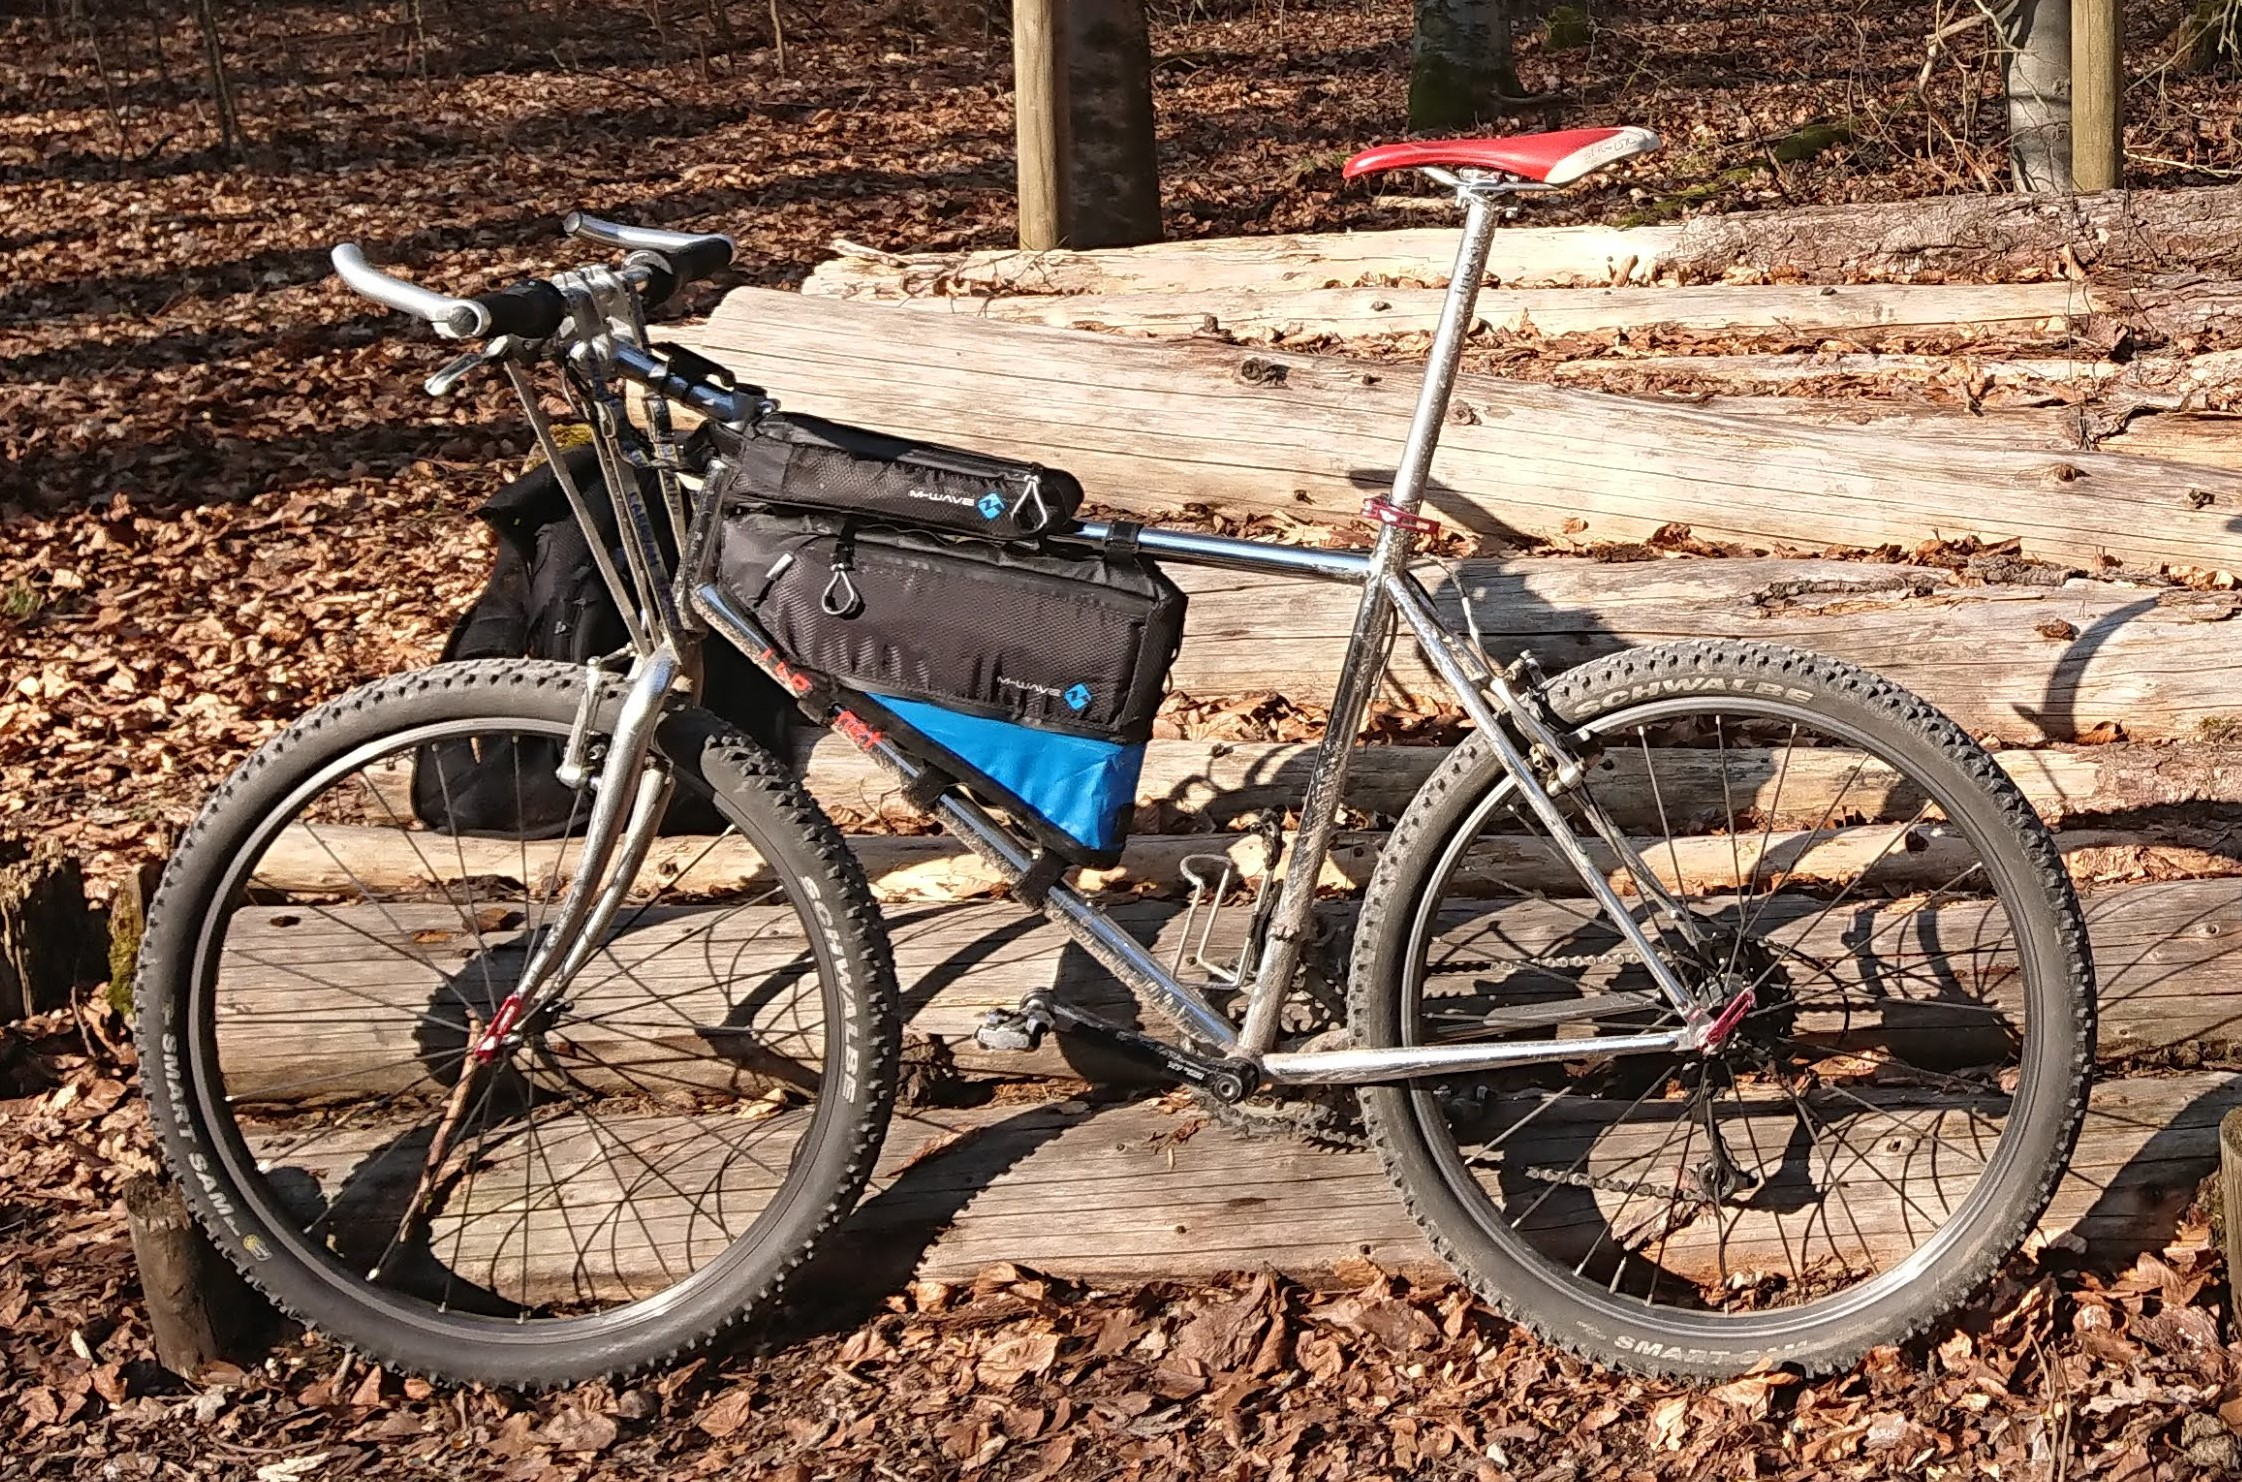 M-WAVE Rough Ride Bikepacking Taschen